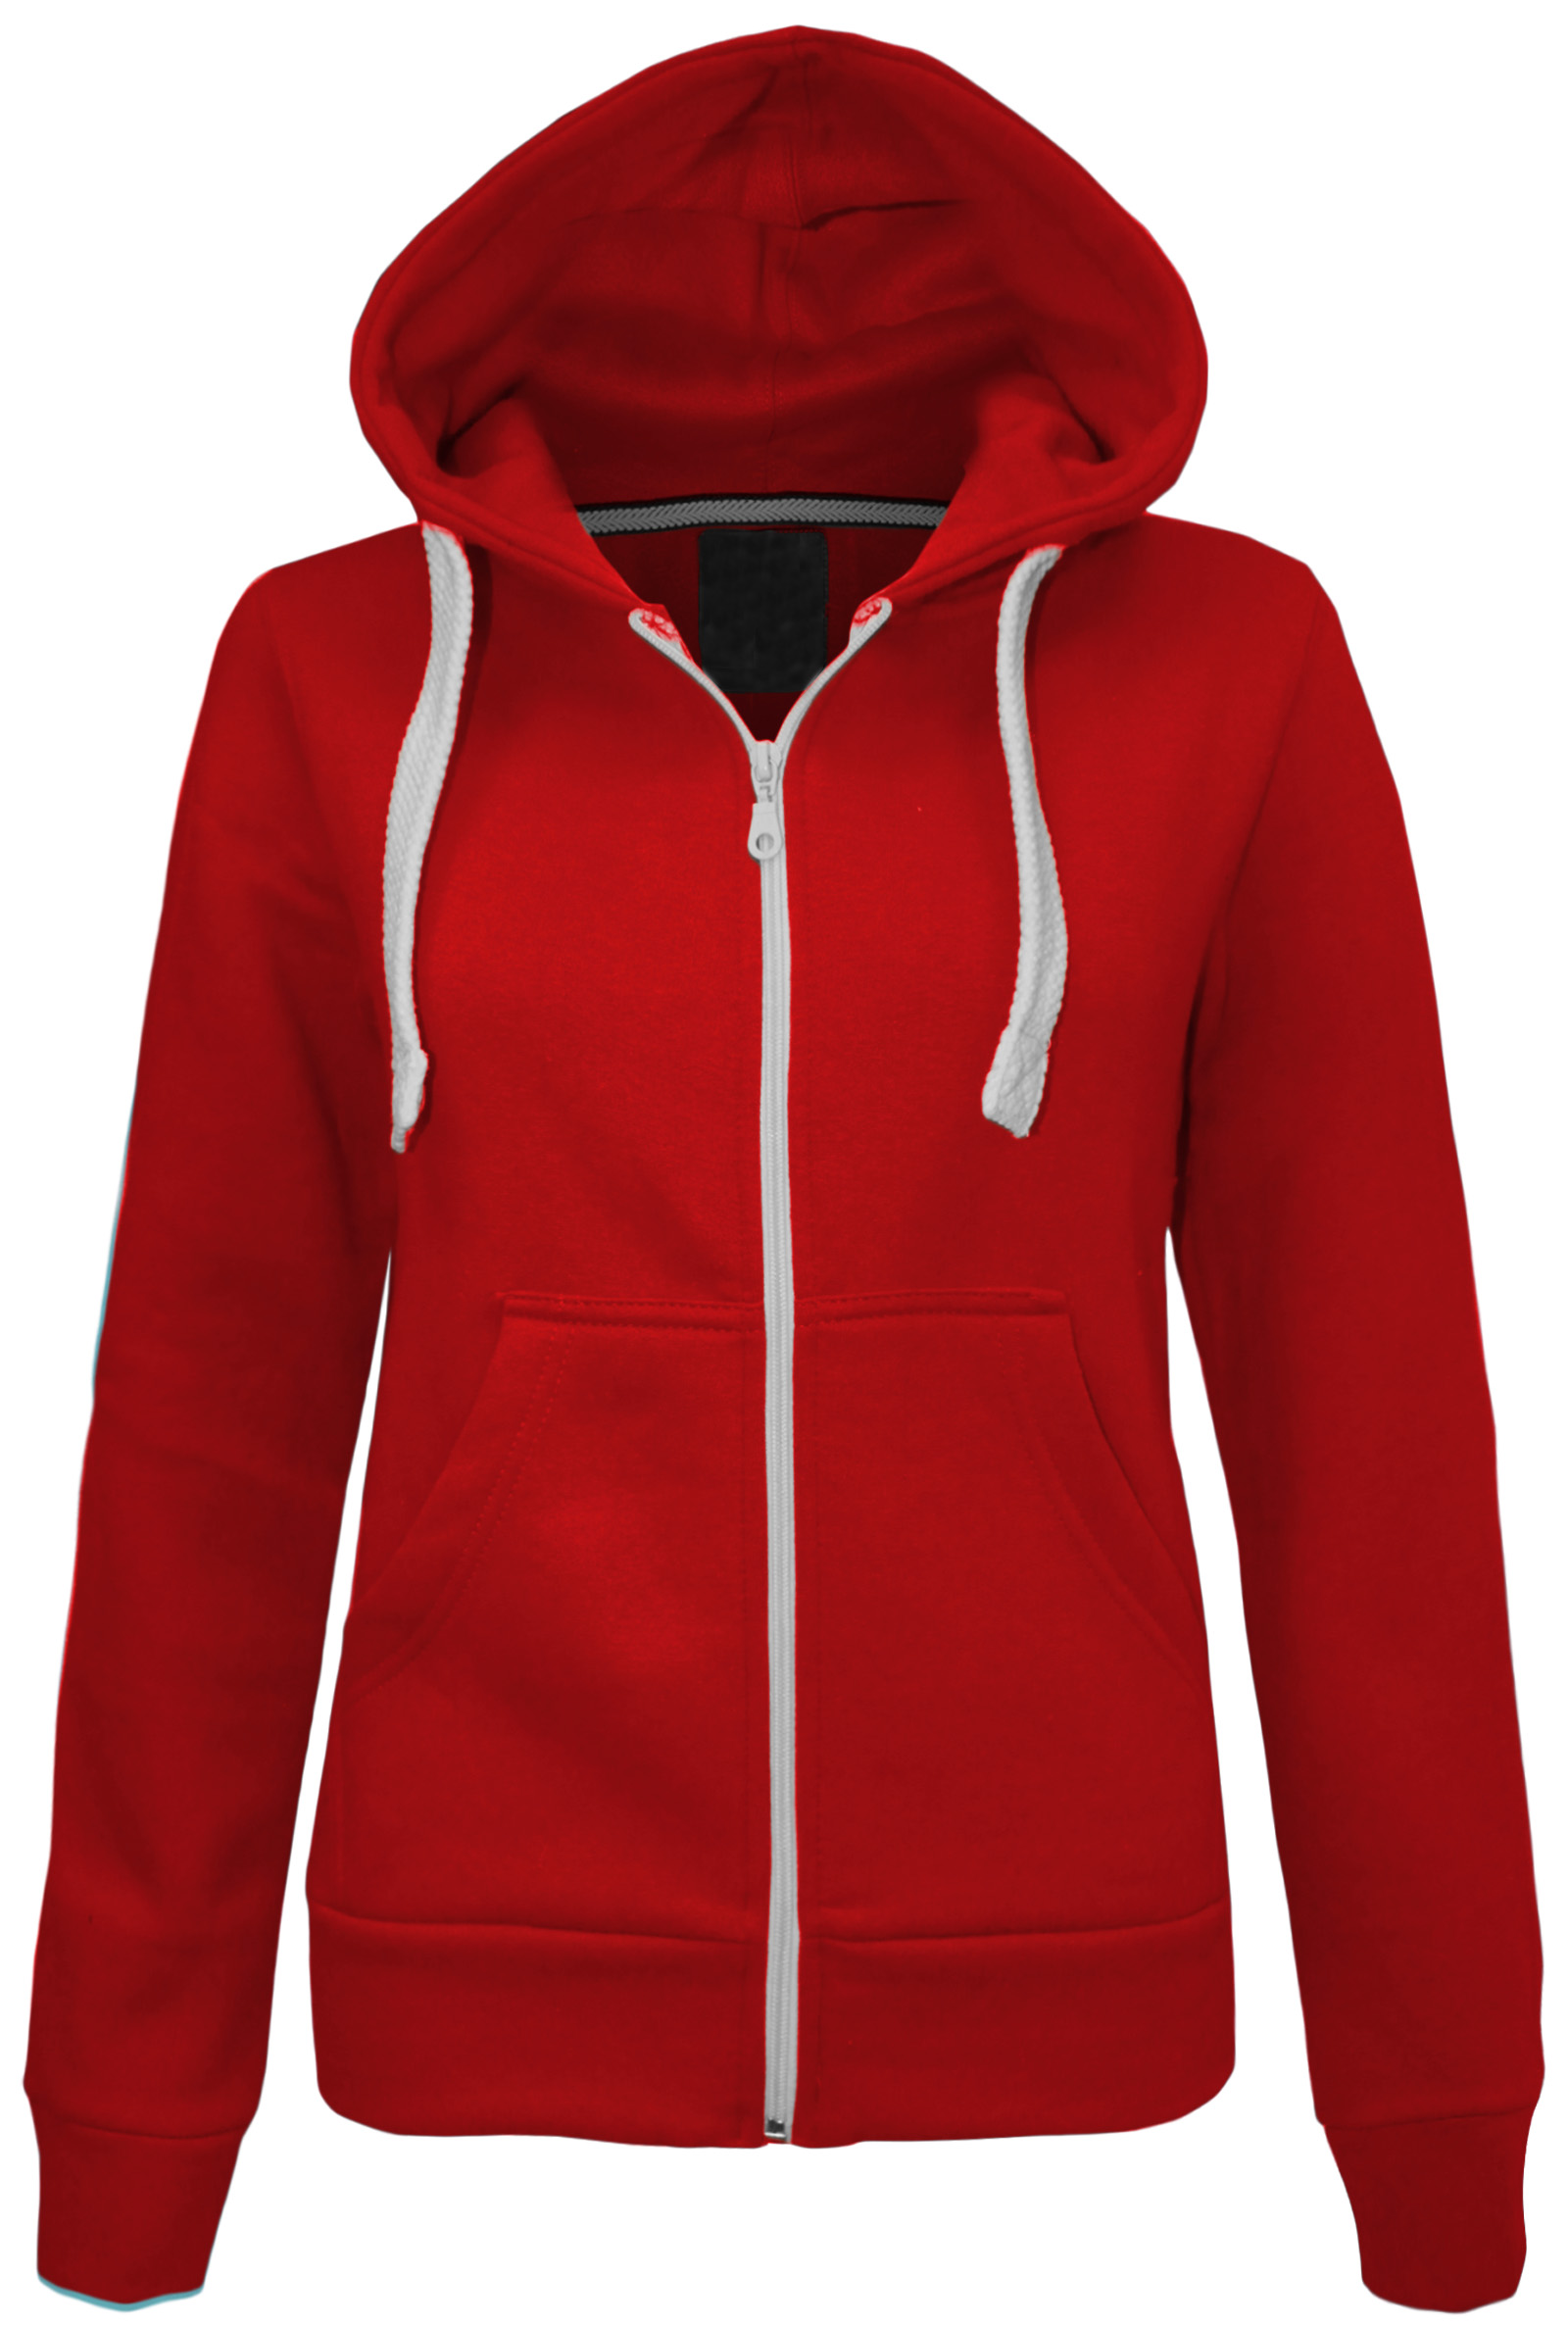 Browse ladies hoodies at Augusta Sportswear. Shop our collection of wholesale hoodies for women! Get all the latest styles and brands online today!